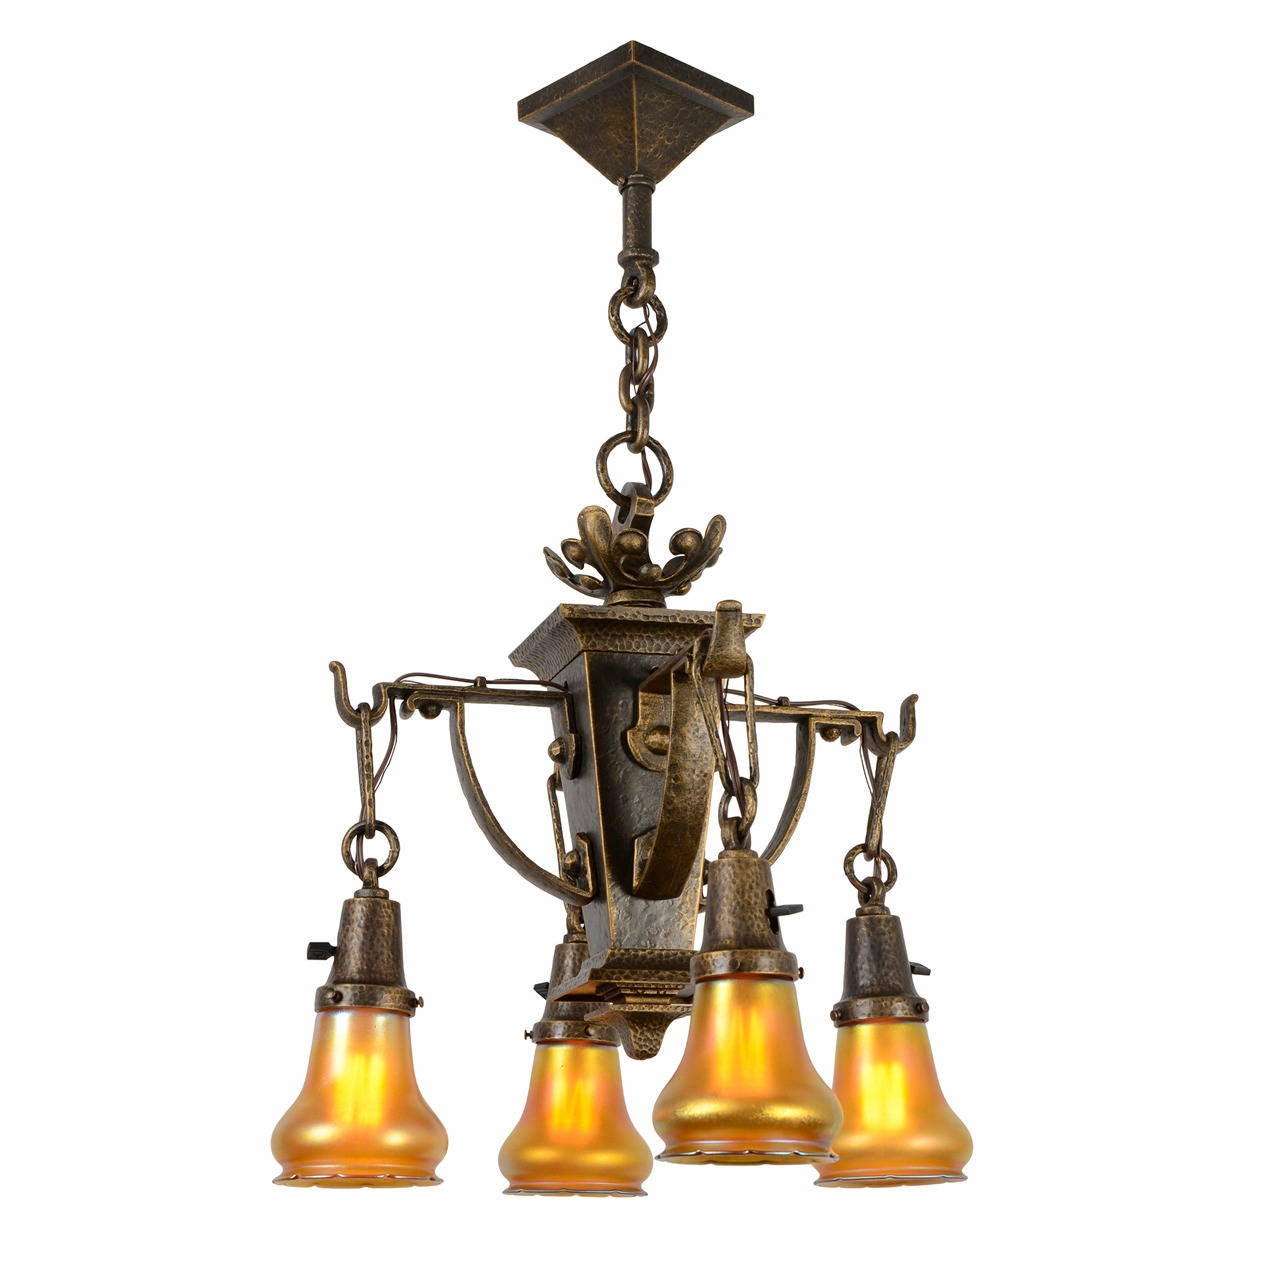 Ornate American Arts and Crafts Chandelier with Quezal